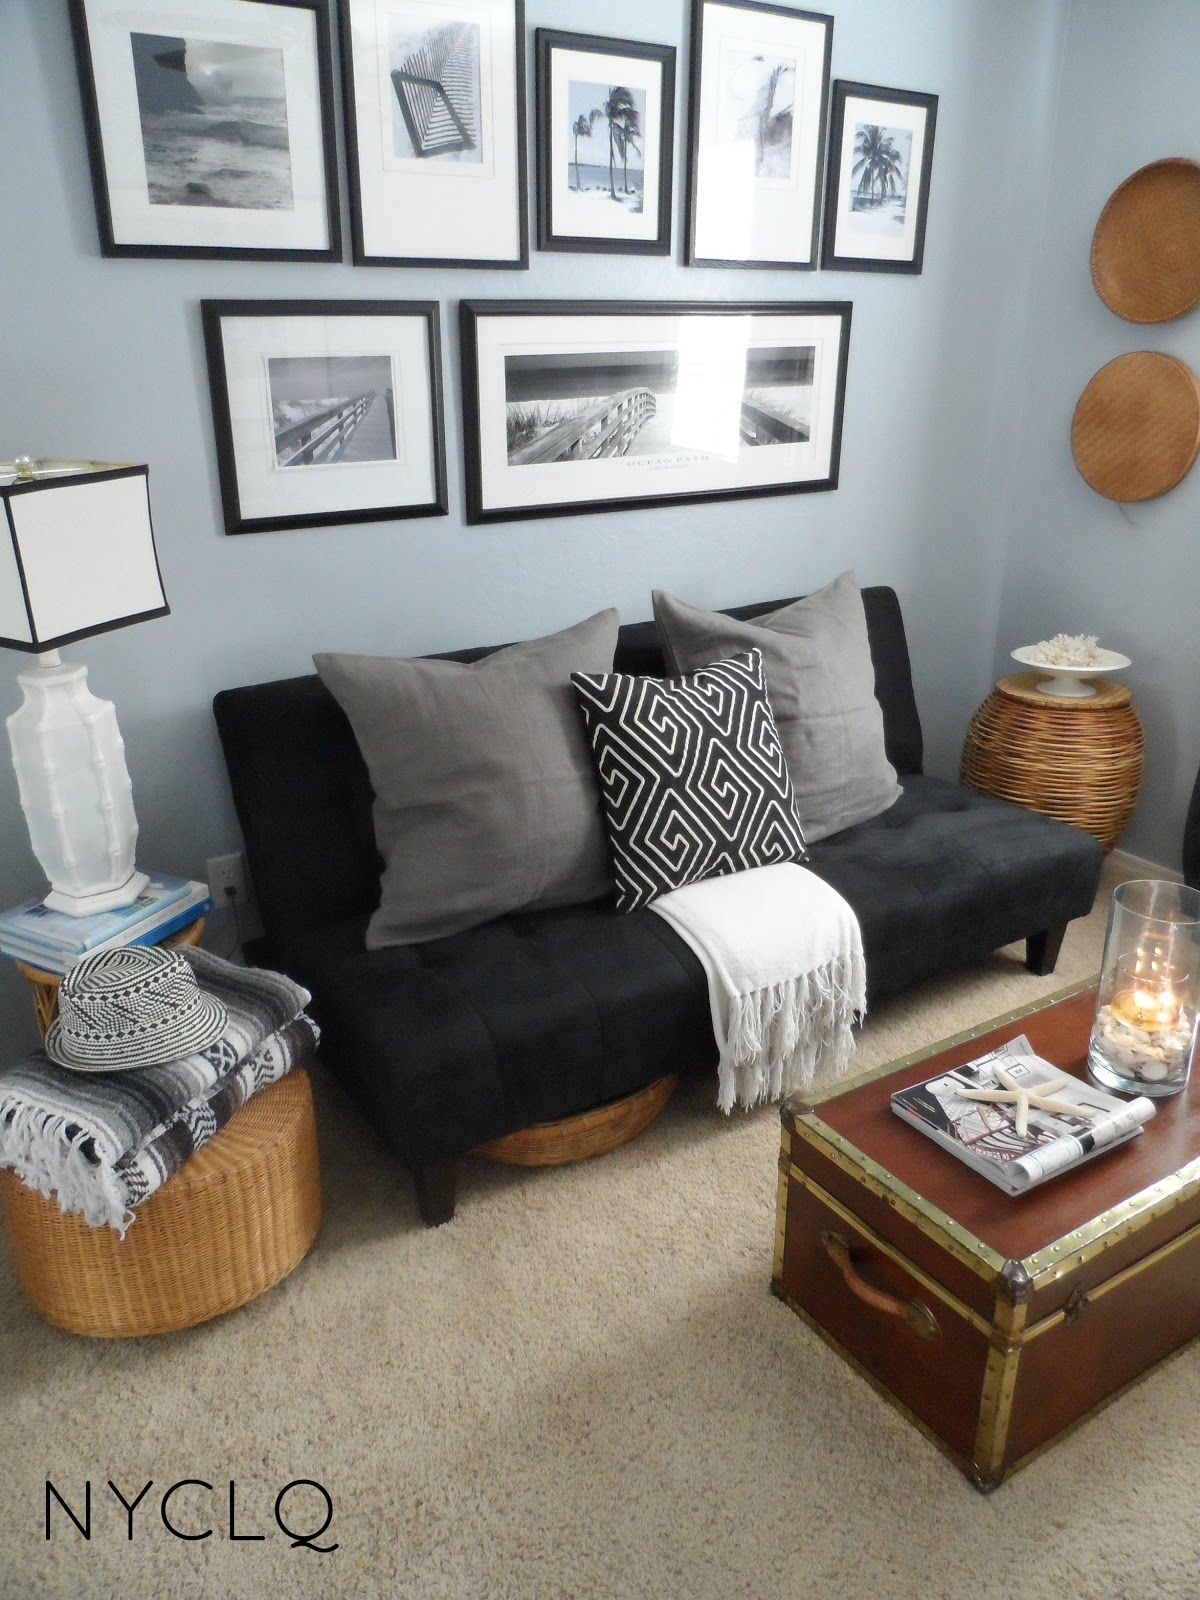 Interior Design Of Guest Room: Rental ReStyle: Guest Room Ready For Under $400